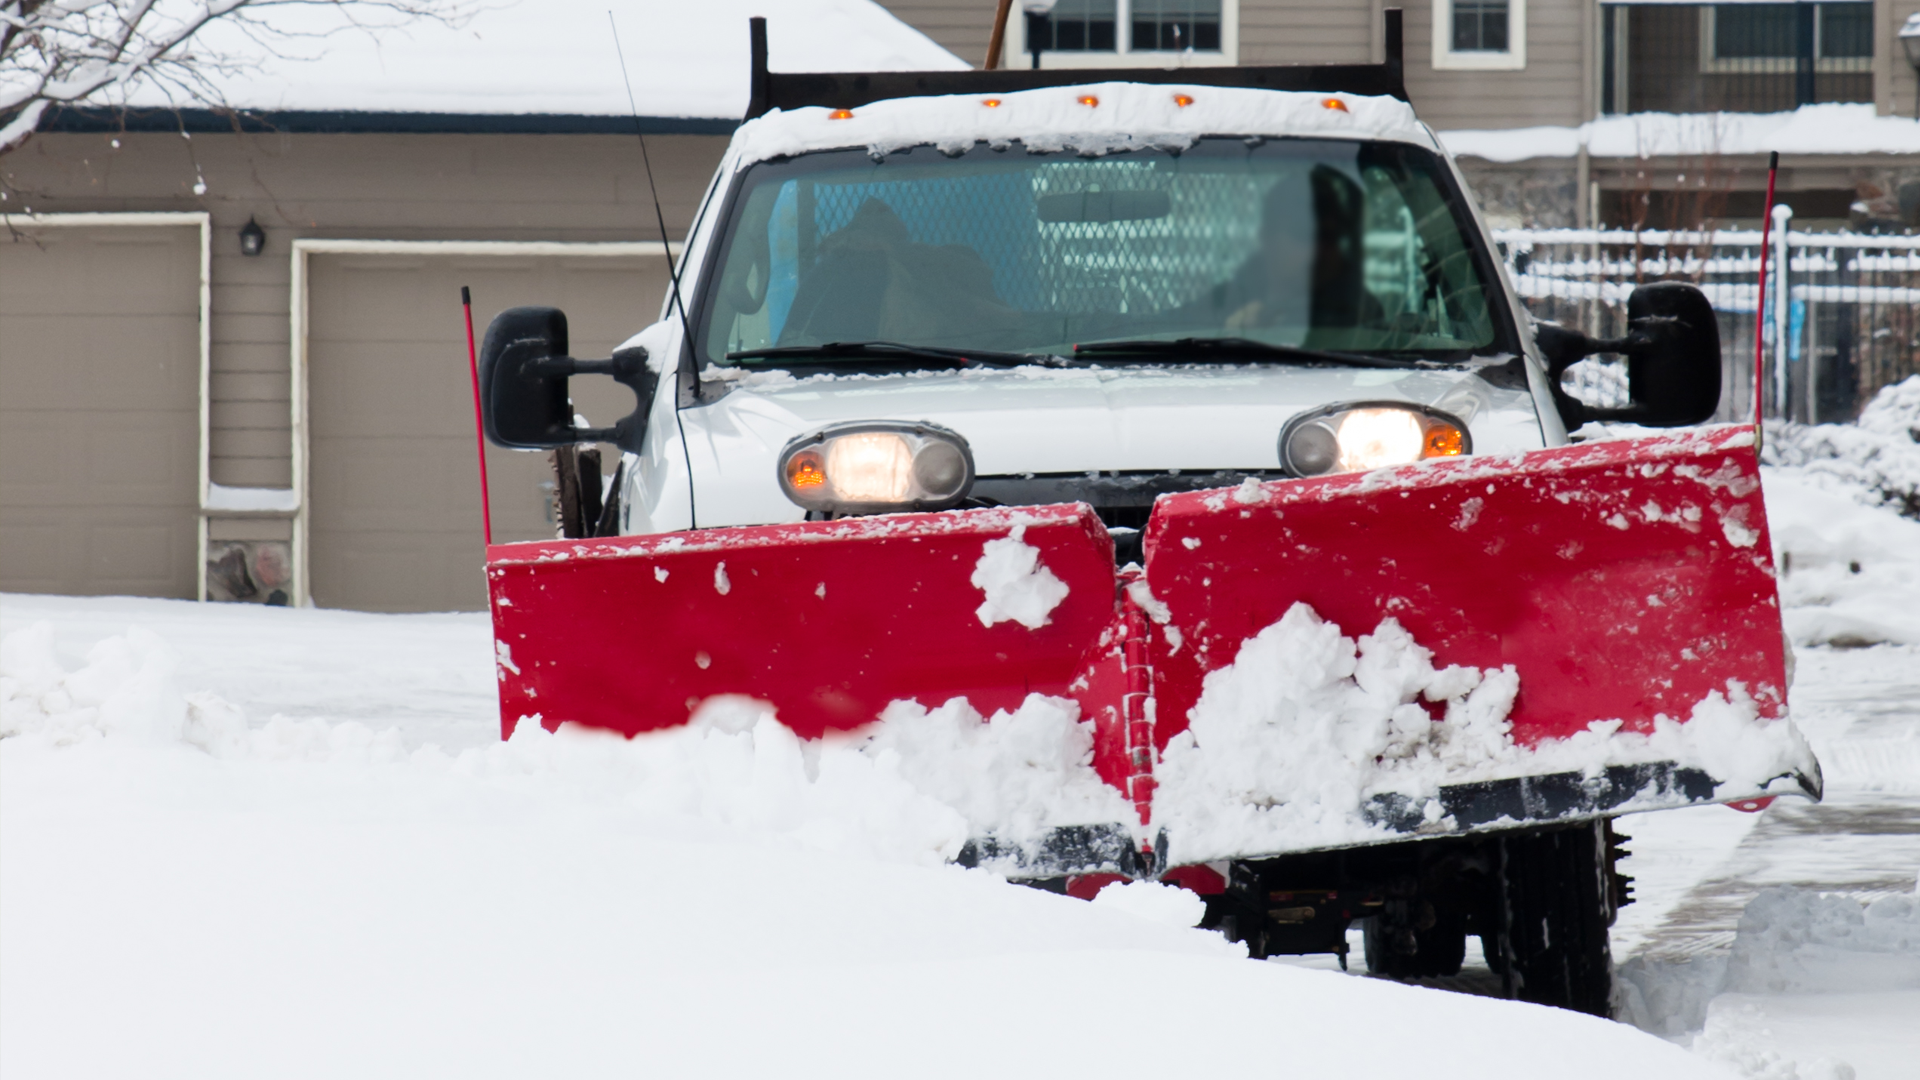 Servant Systems - Cloud Based Home Service Franchise - Snow Removal